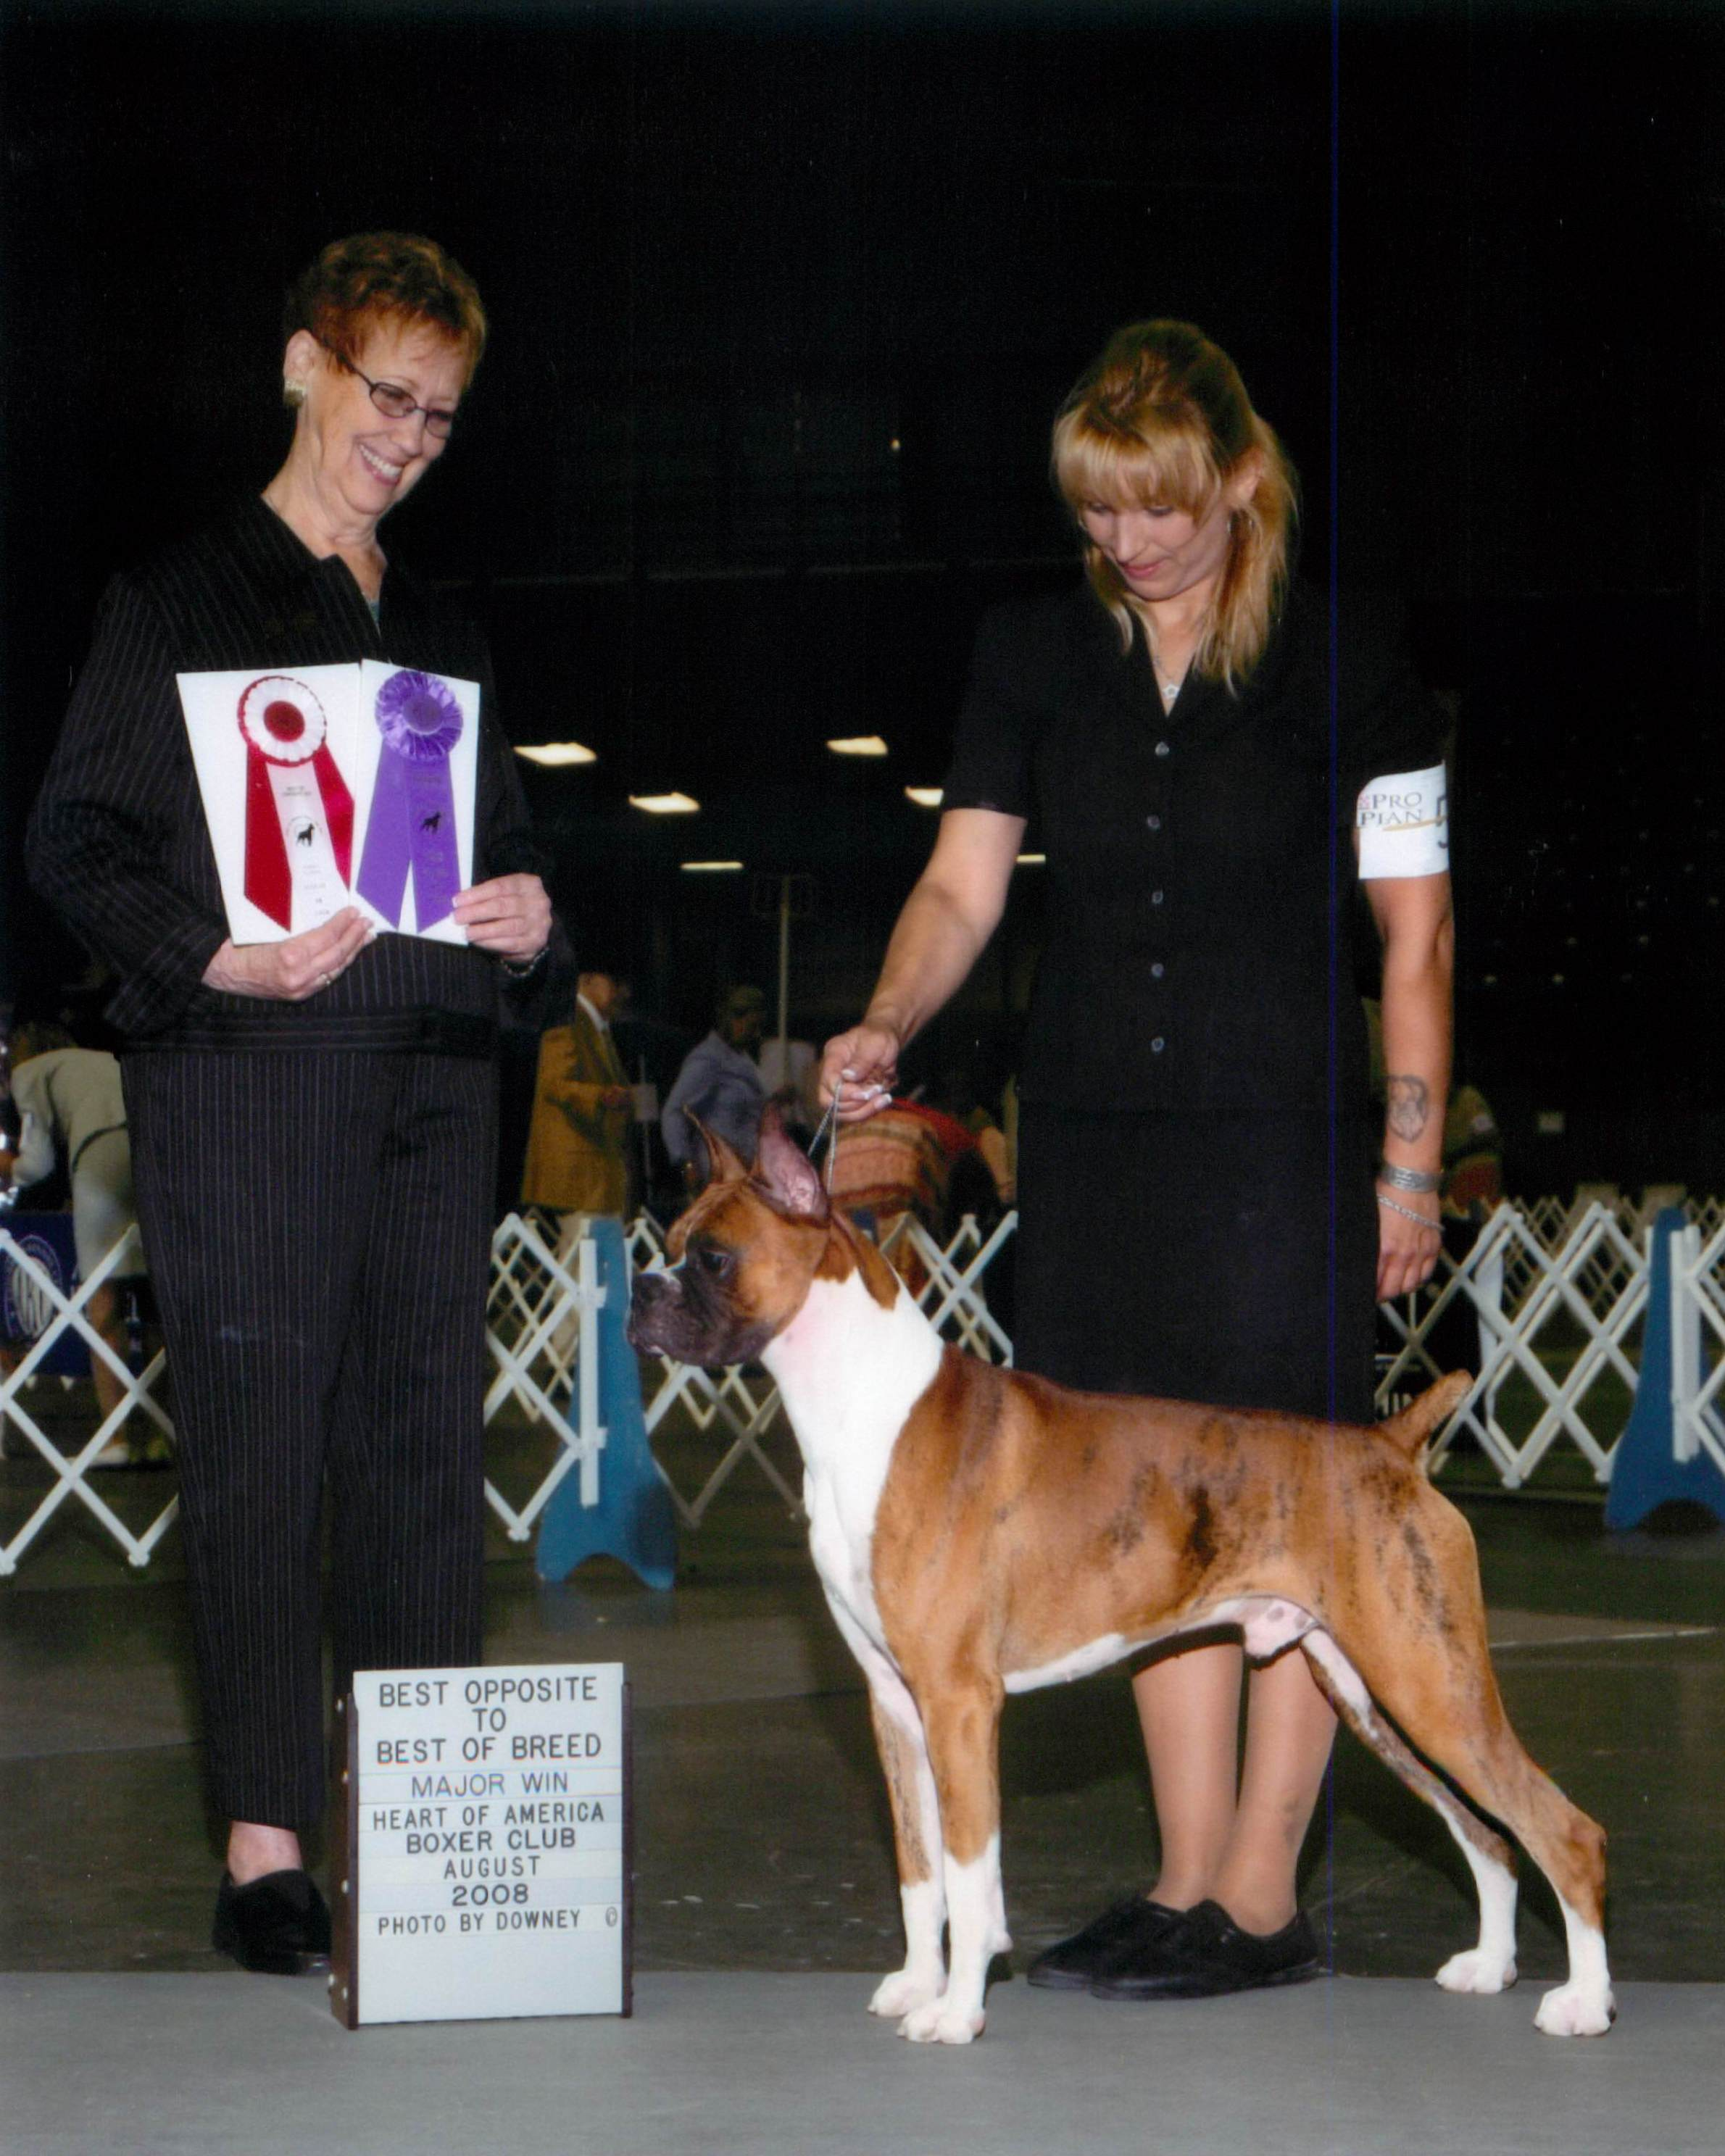 Winners Dog @ 2008 Specialty Show